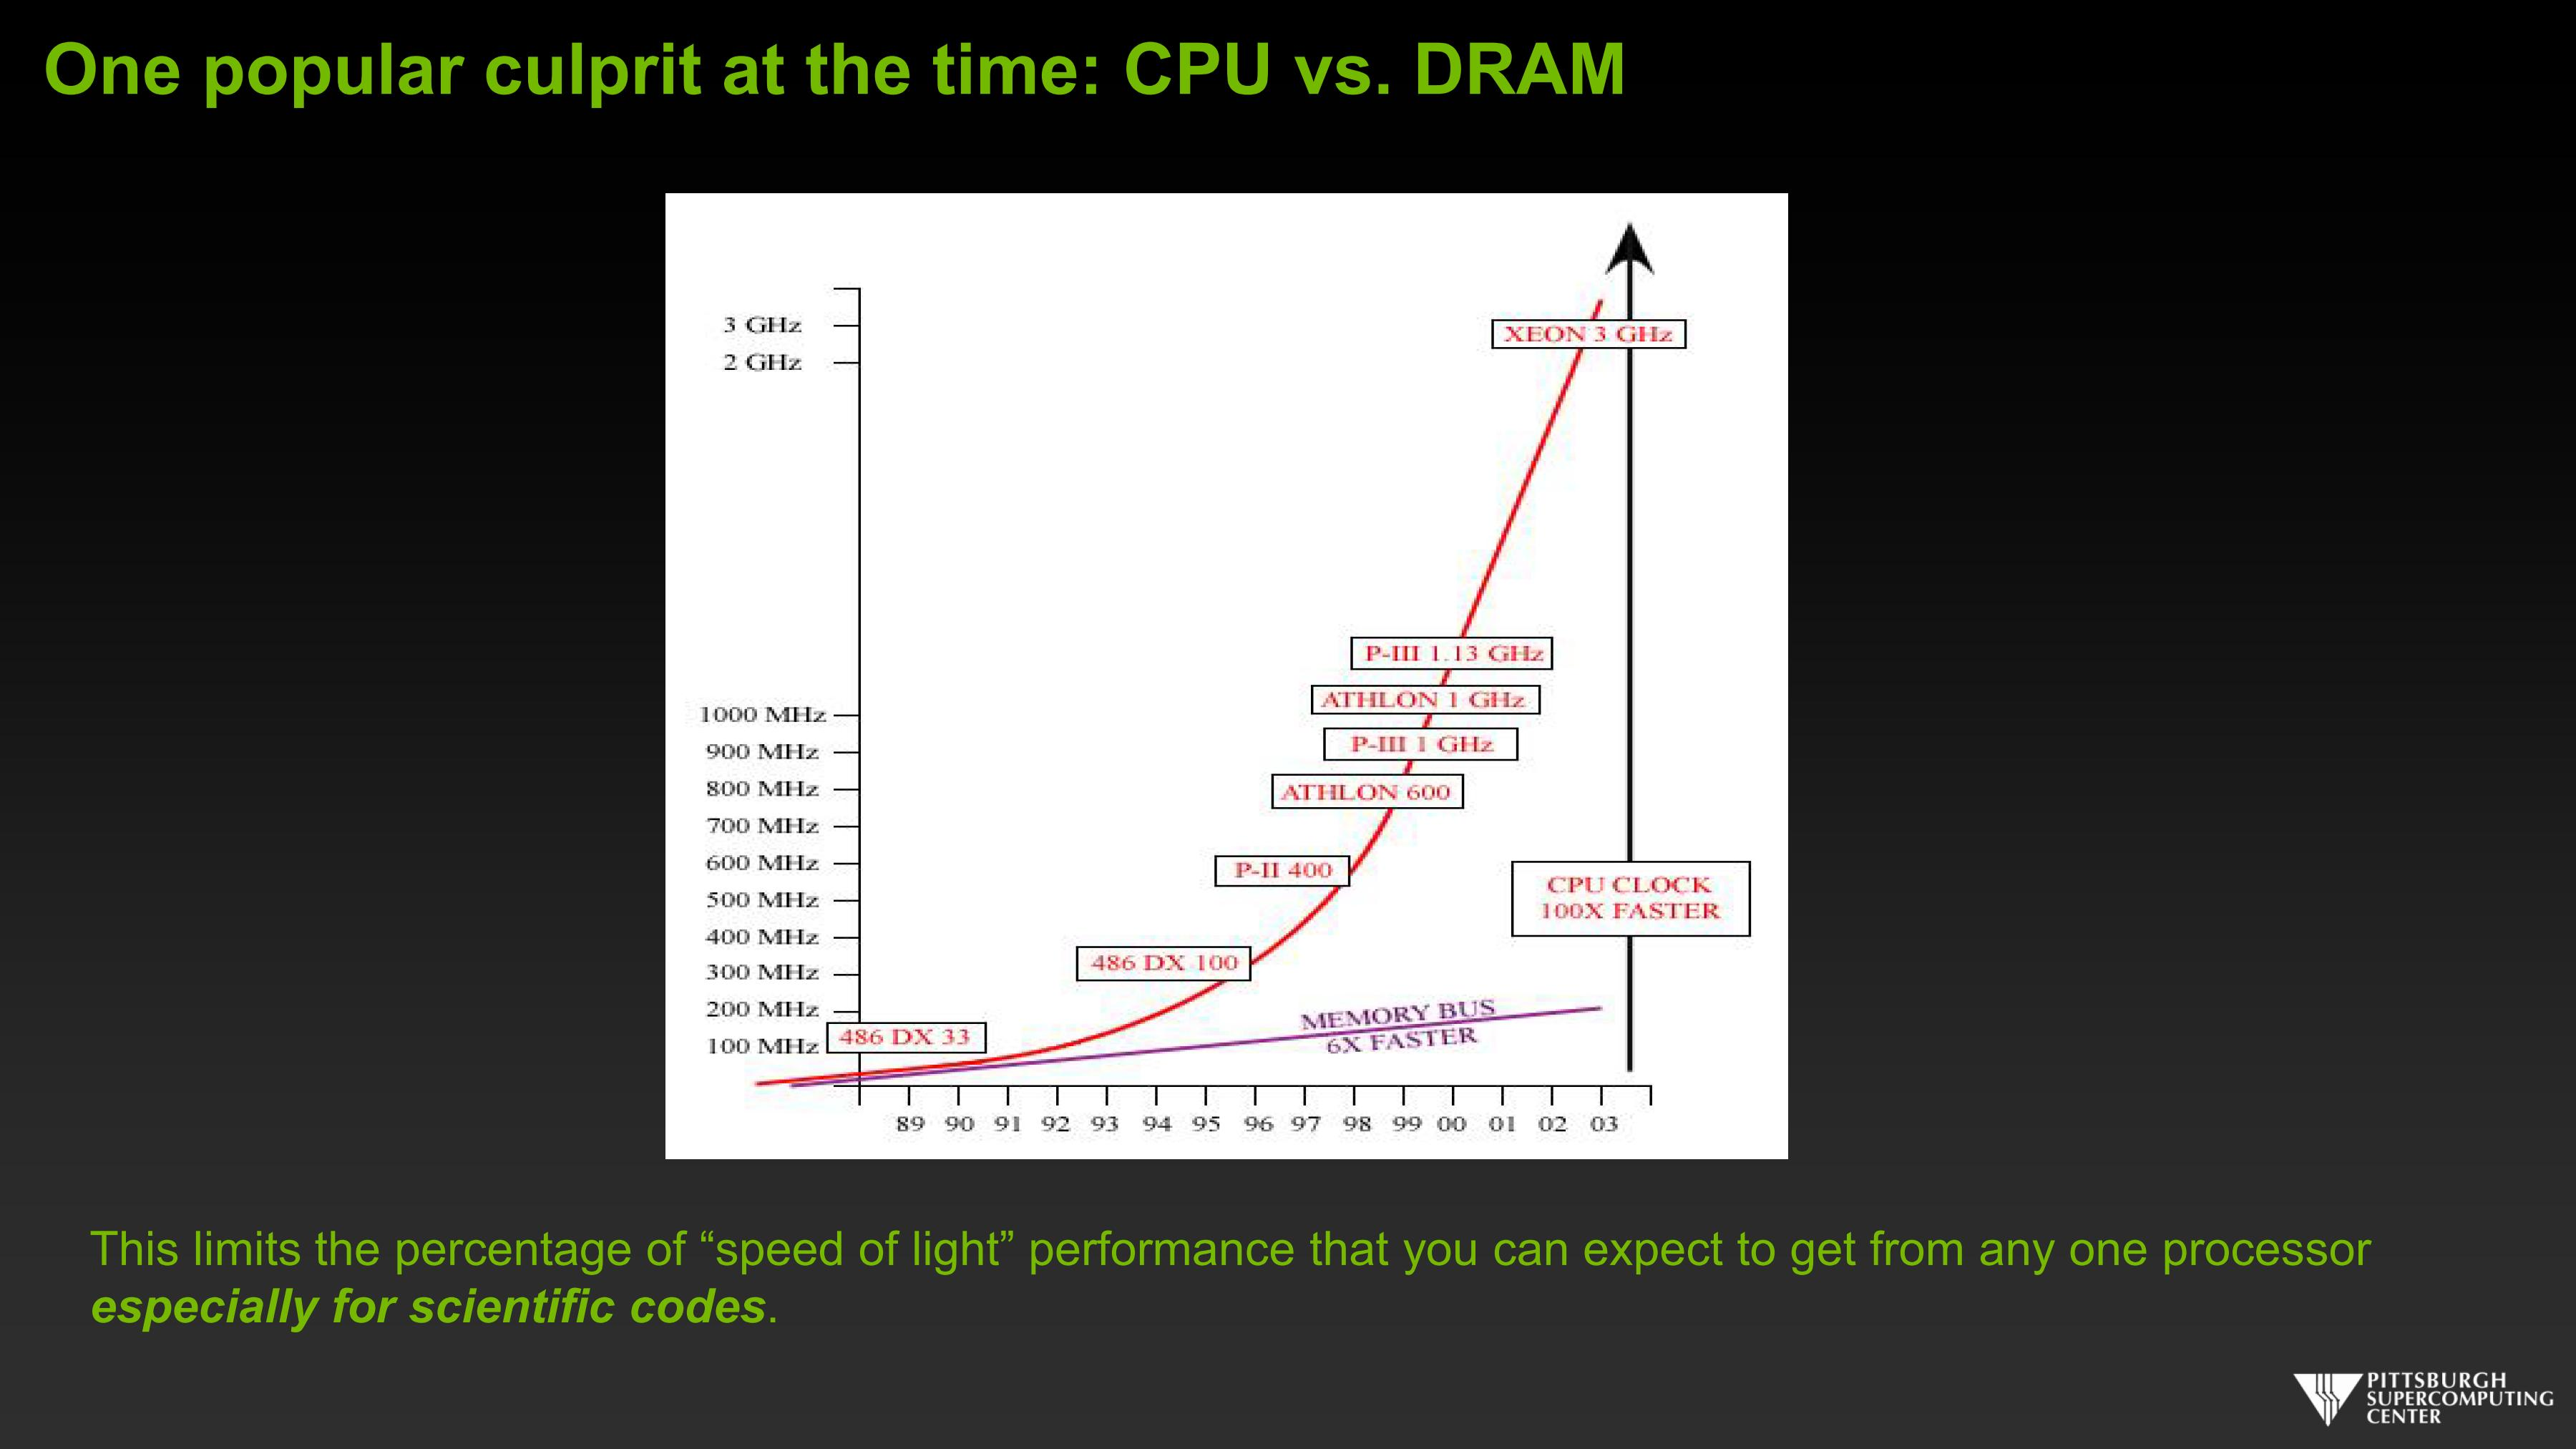 One popular culprit at the time: CPU vs. DRAM